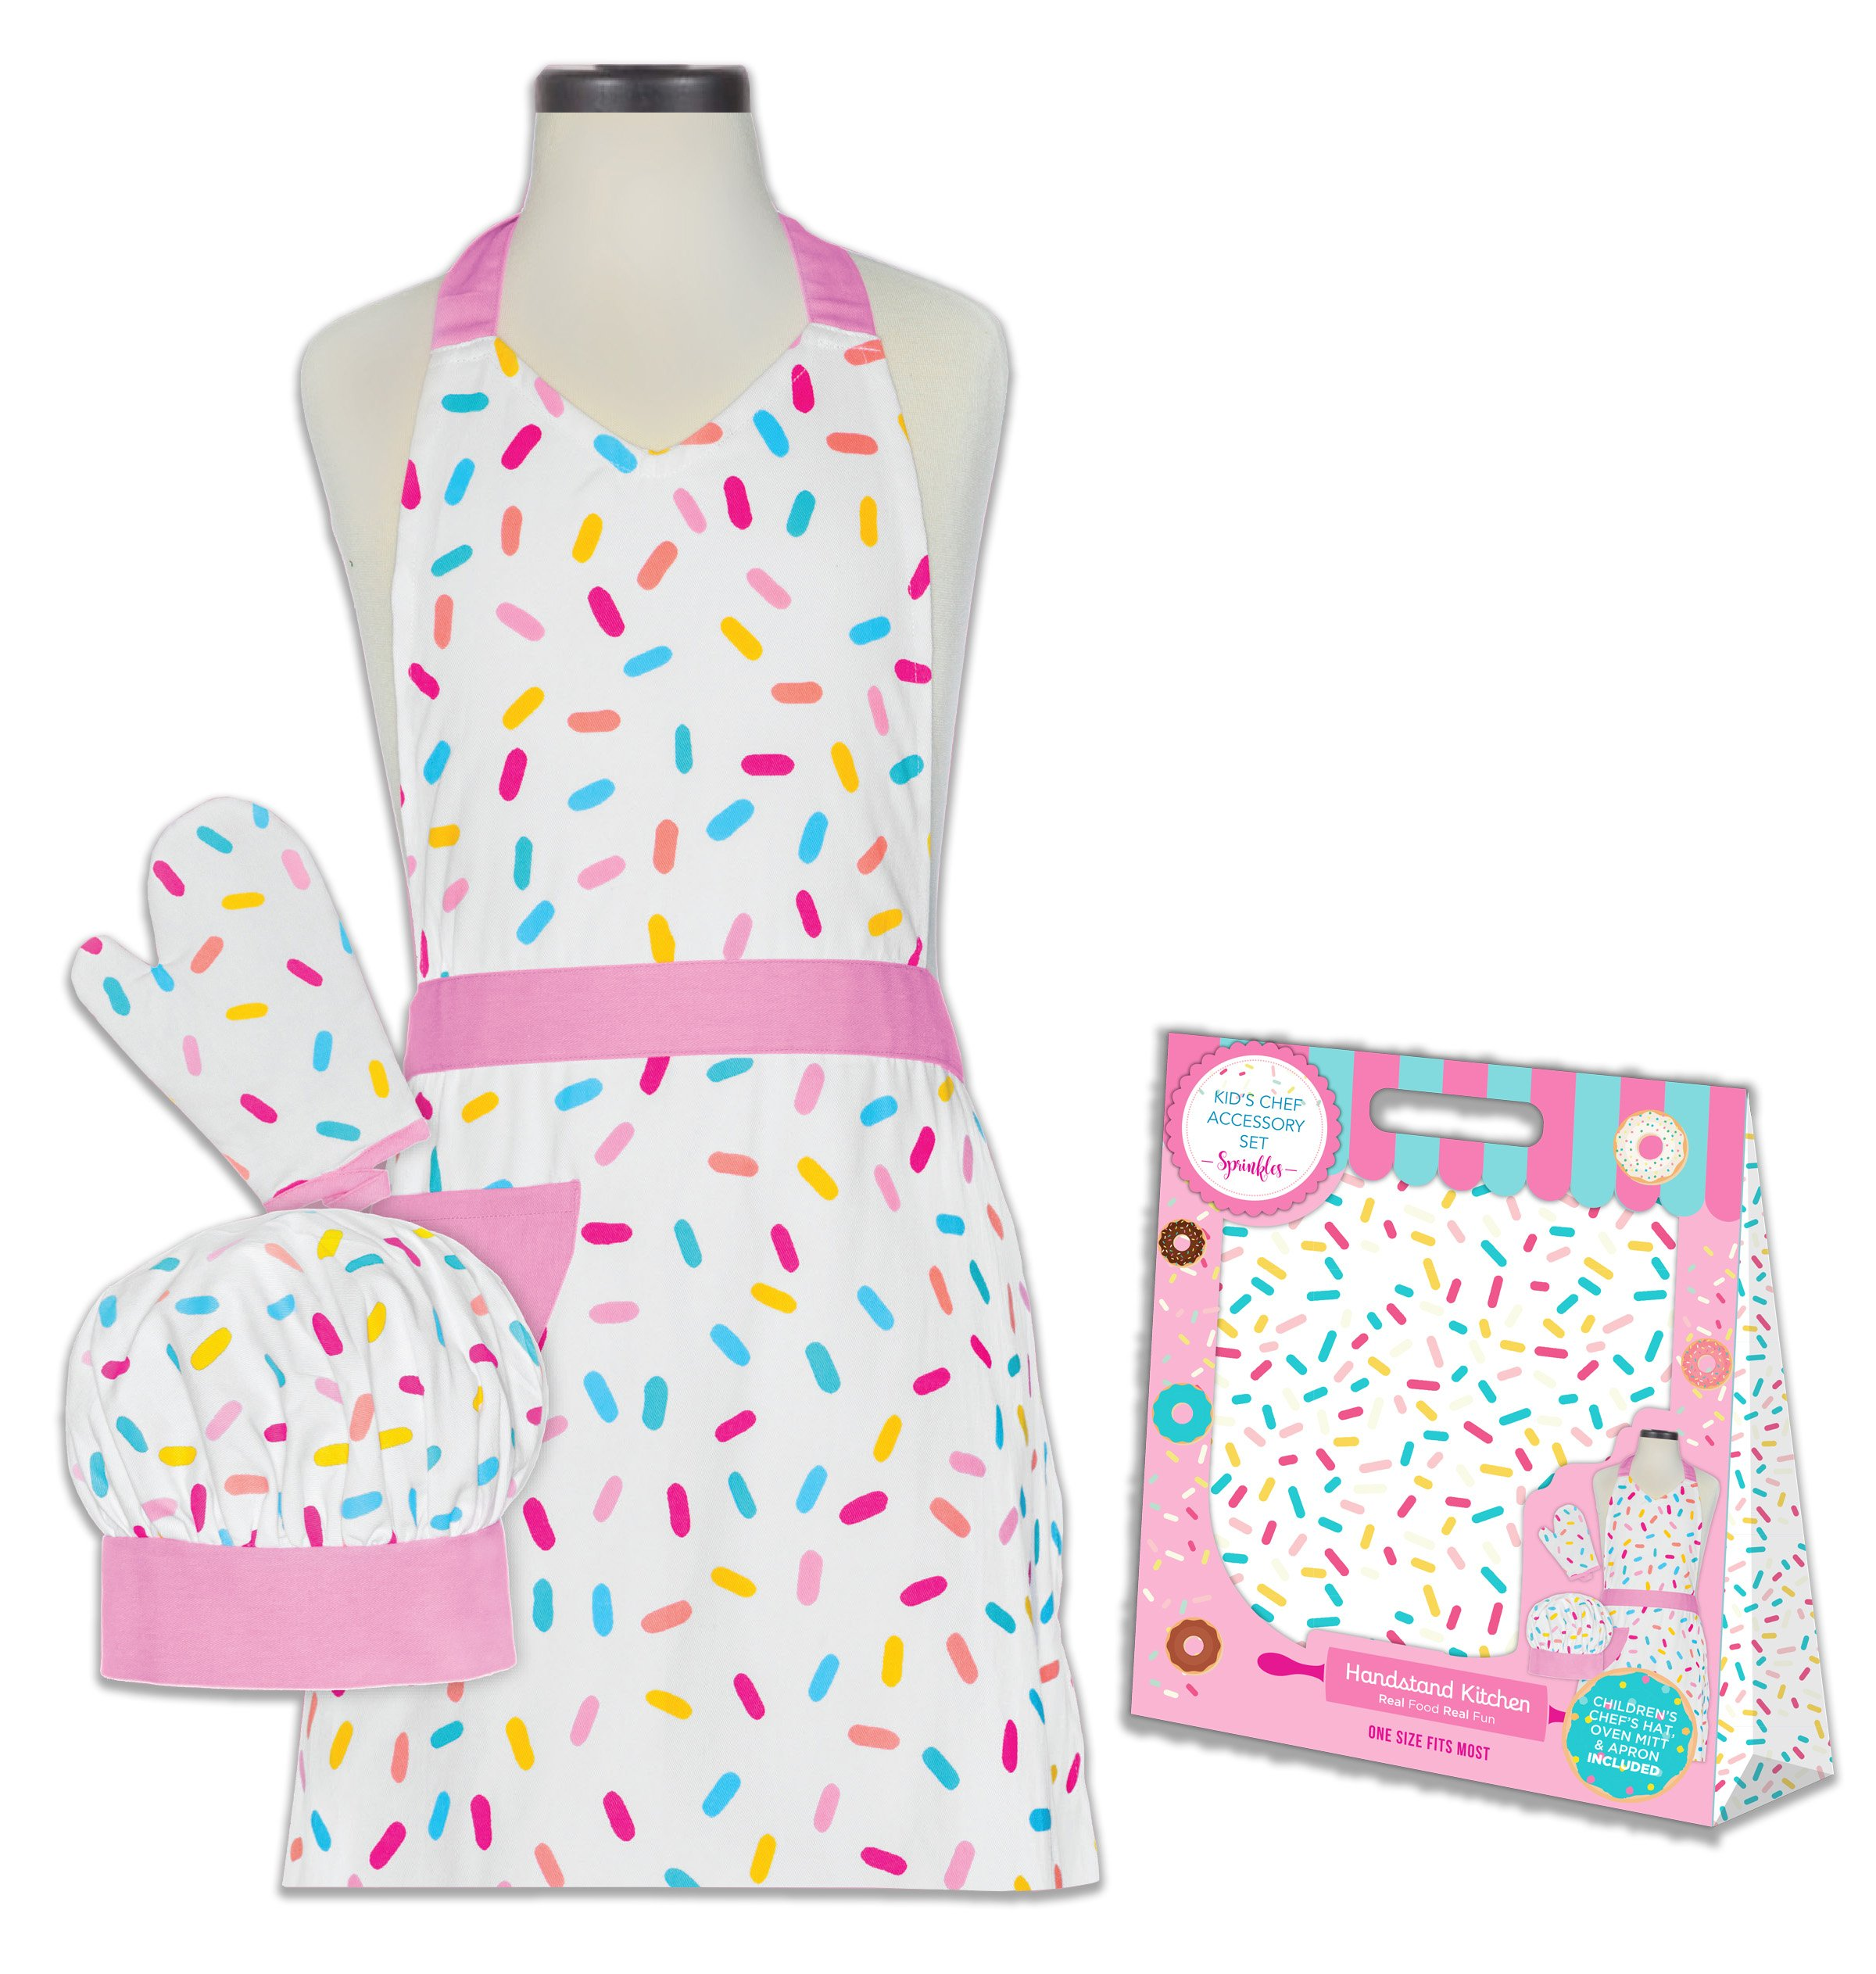 Handstand Kitchen Child's Sprinkles 100% Cotton Apron, Mitt and Chef's Hat Gift Set